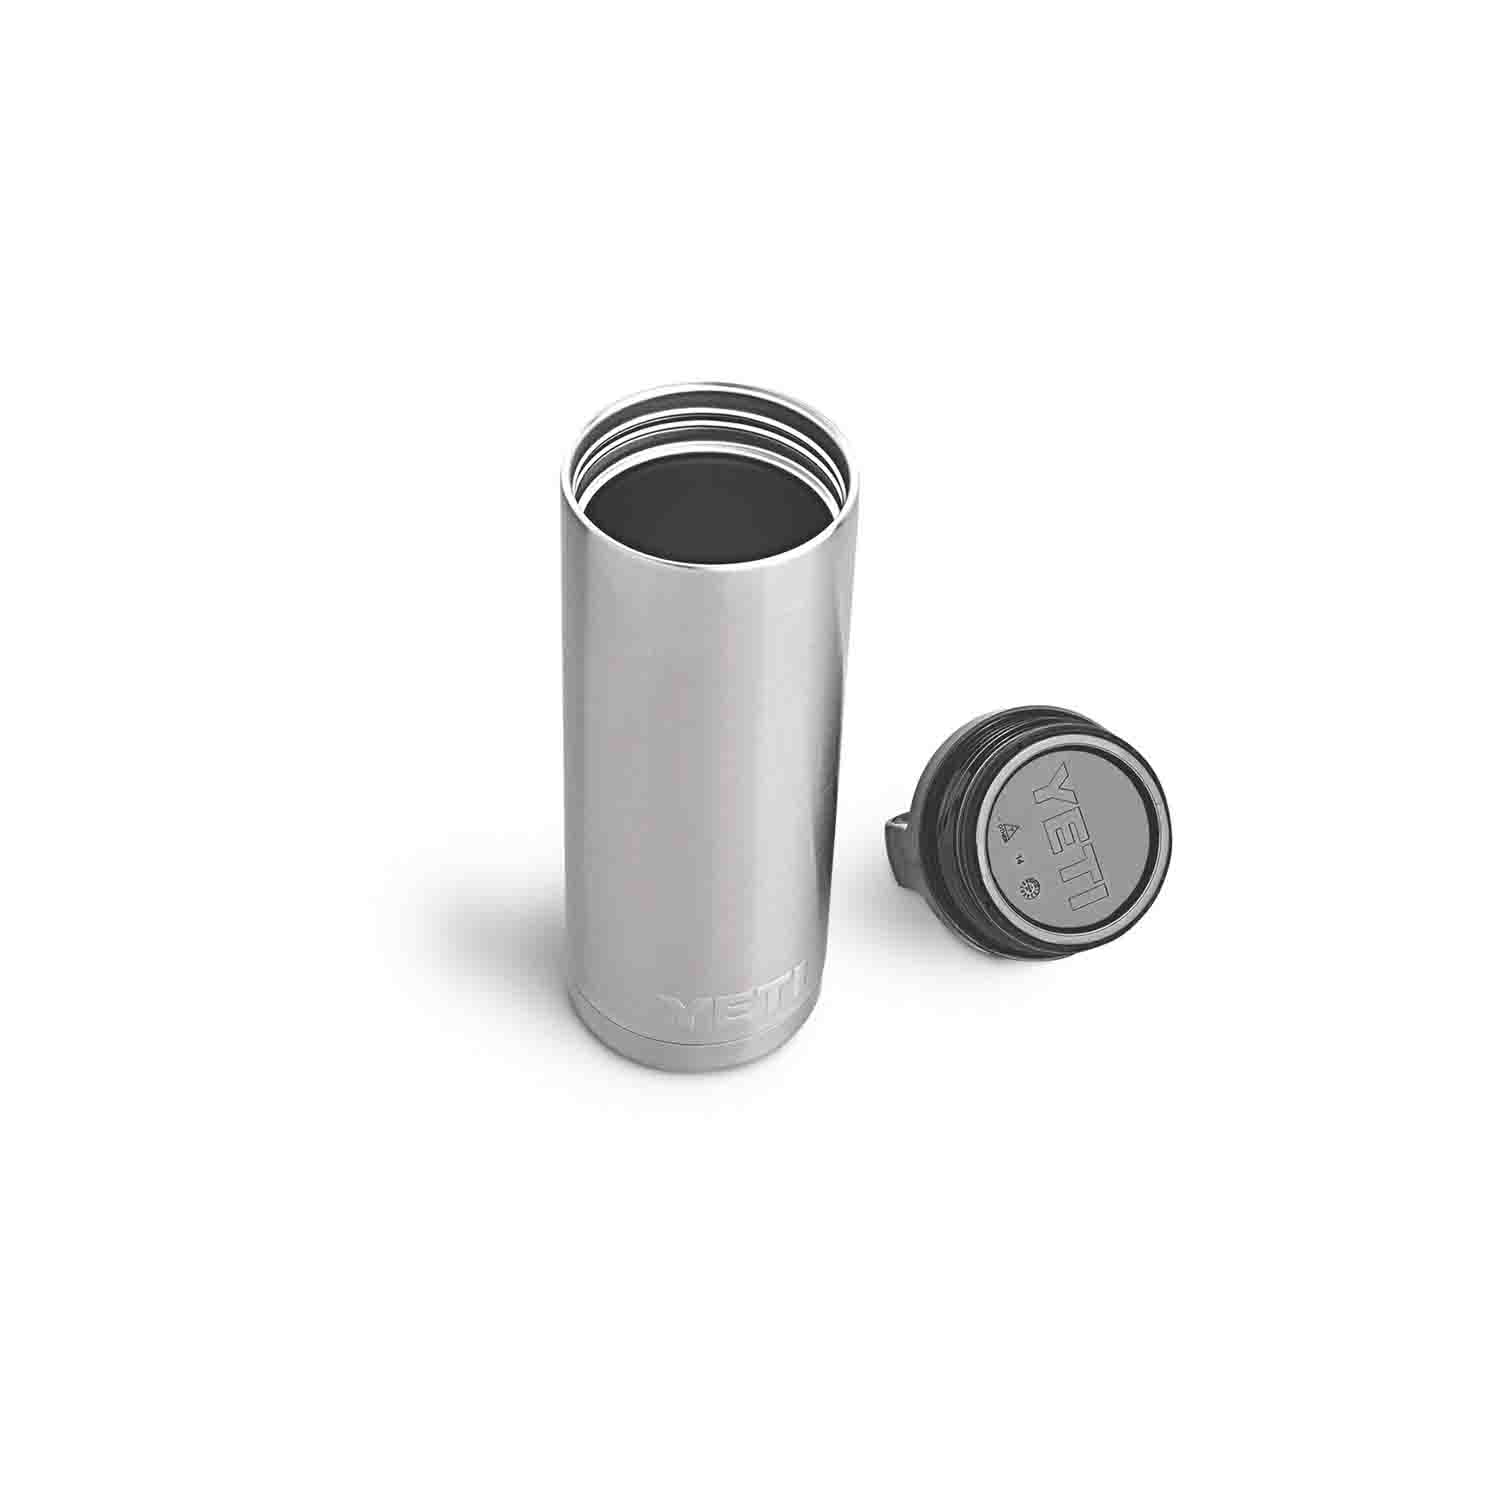 Yeti Rambler - Bottle